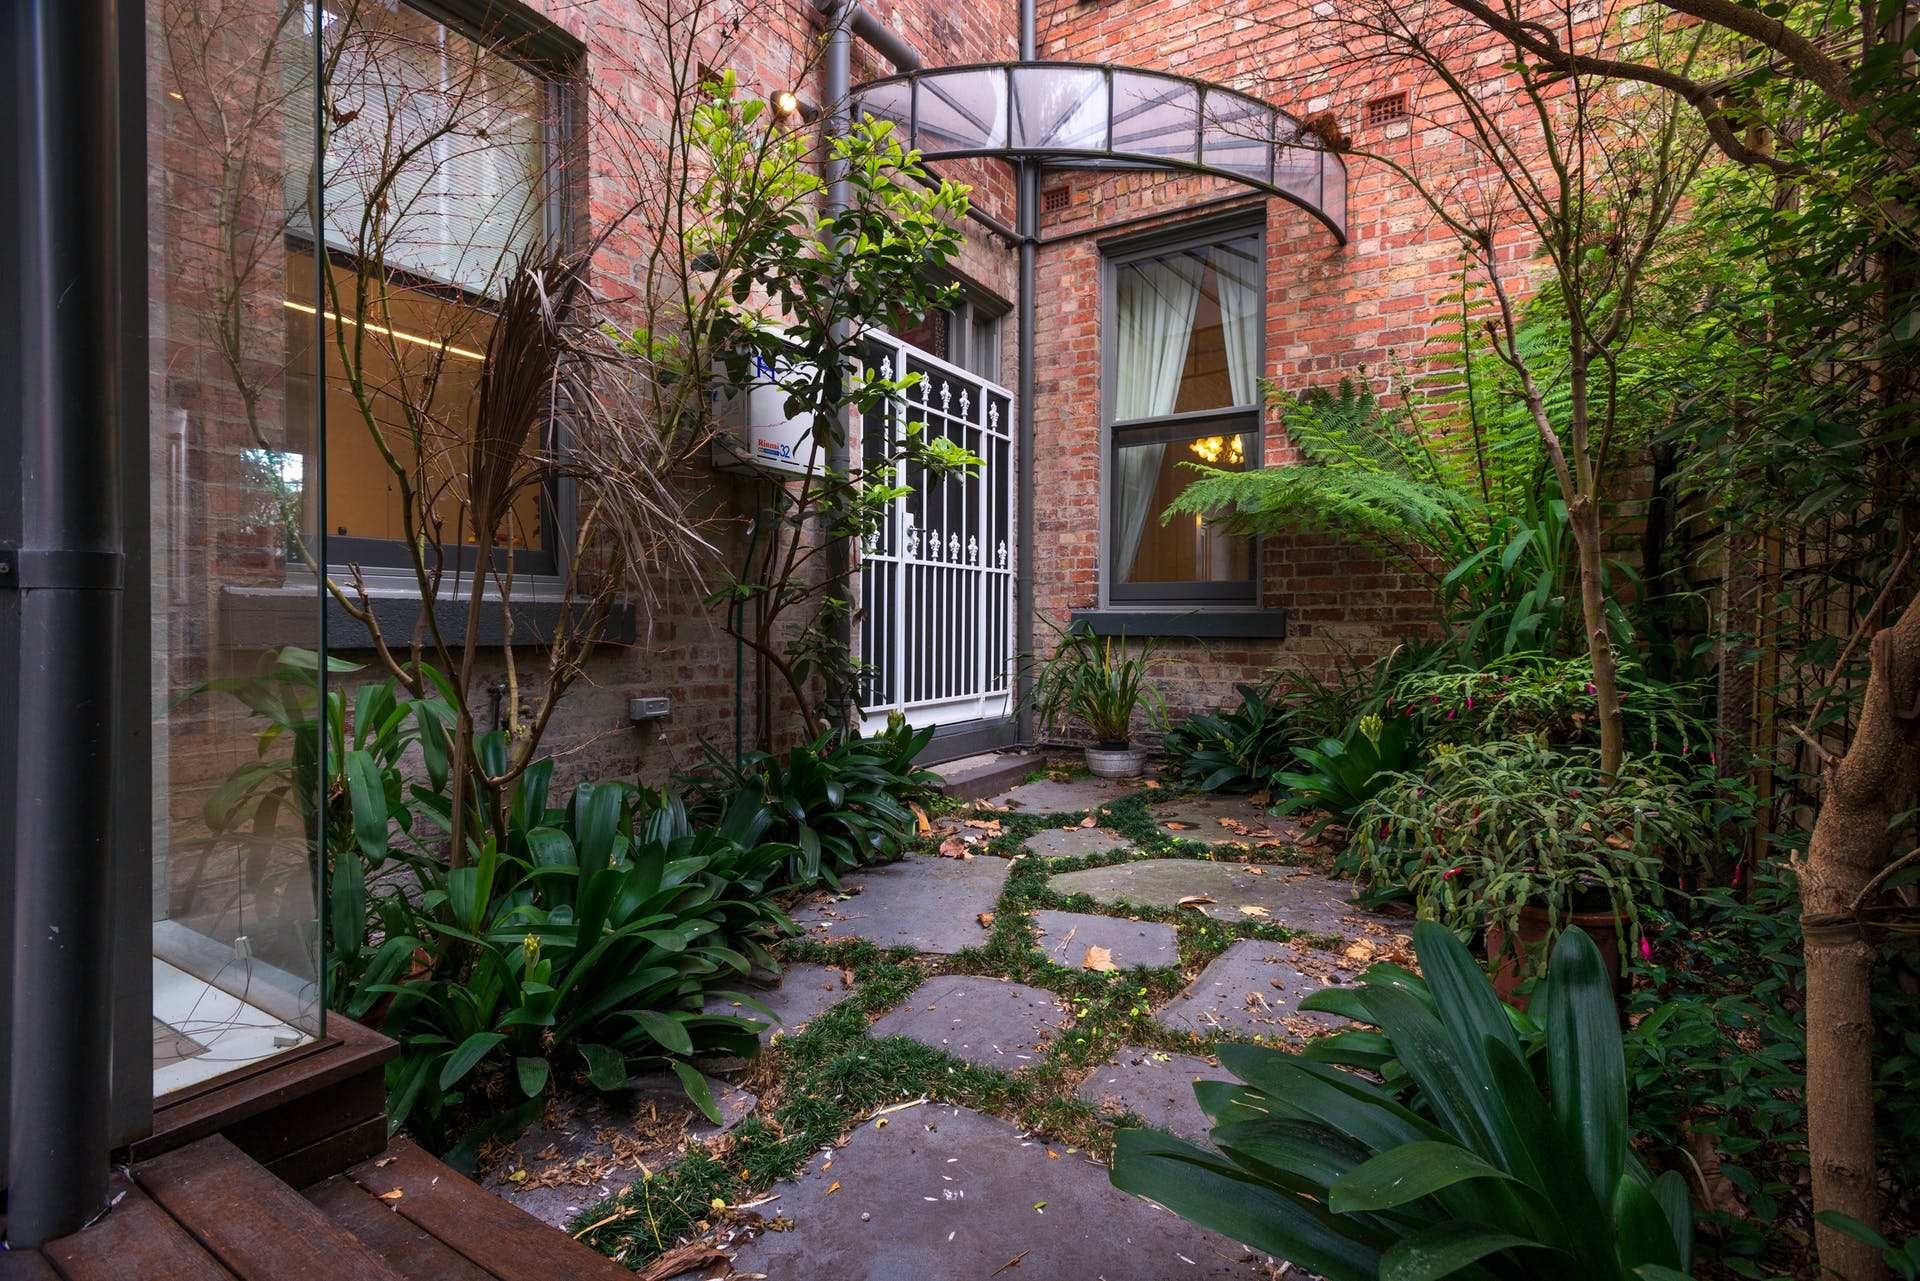 601-king-street-west-melbourne-student-accommodation-Melbourne-Outdoor-Unilodgers